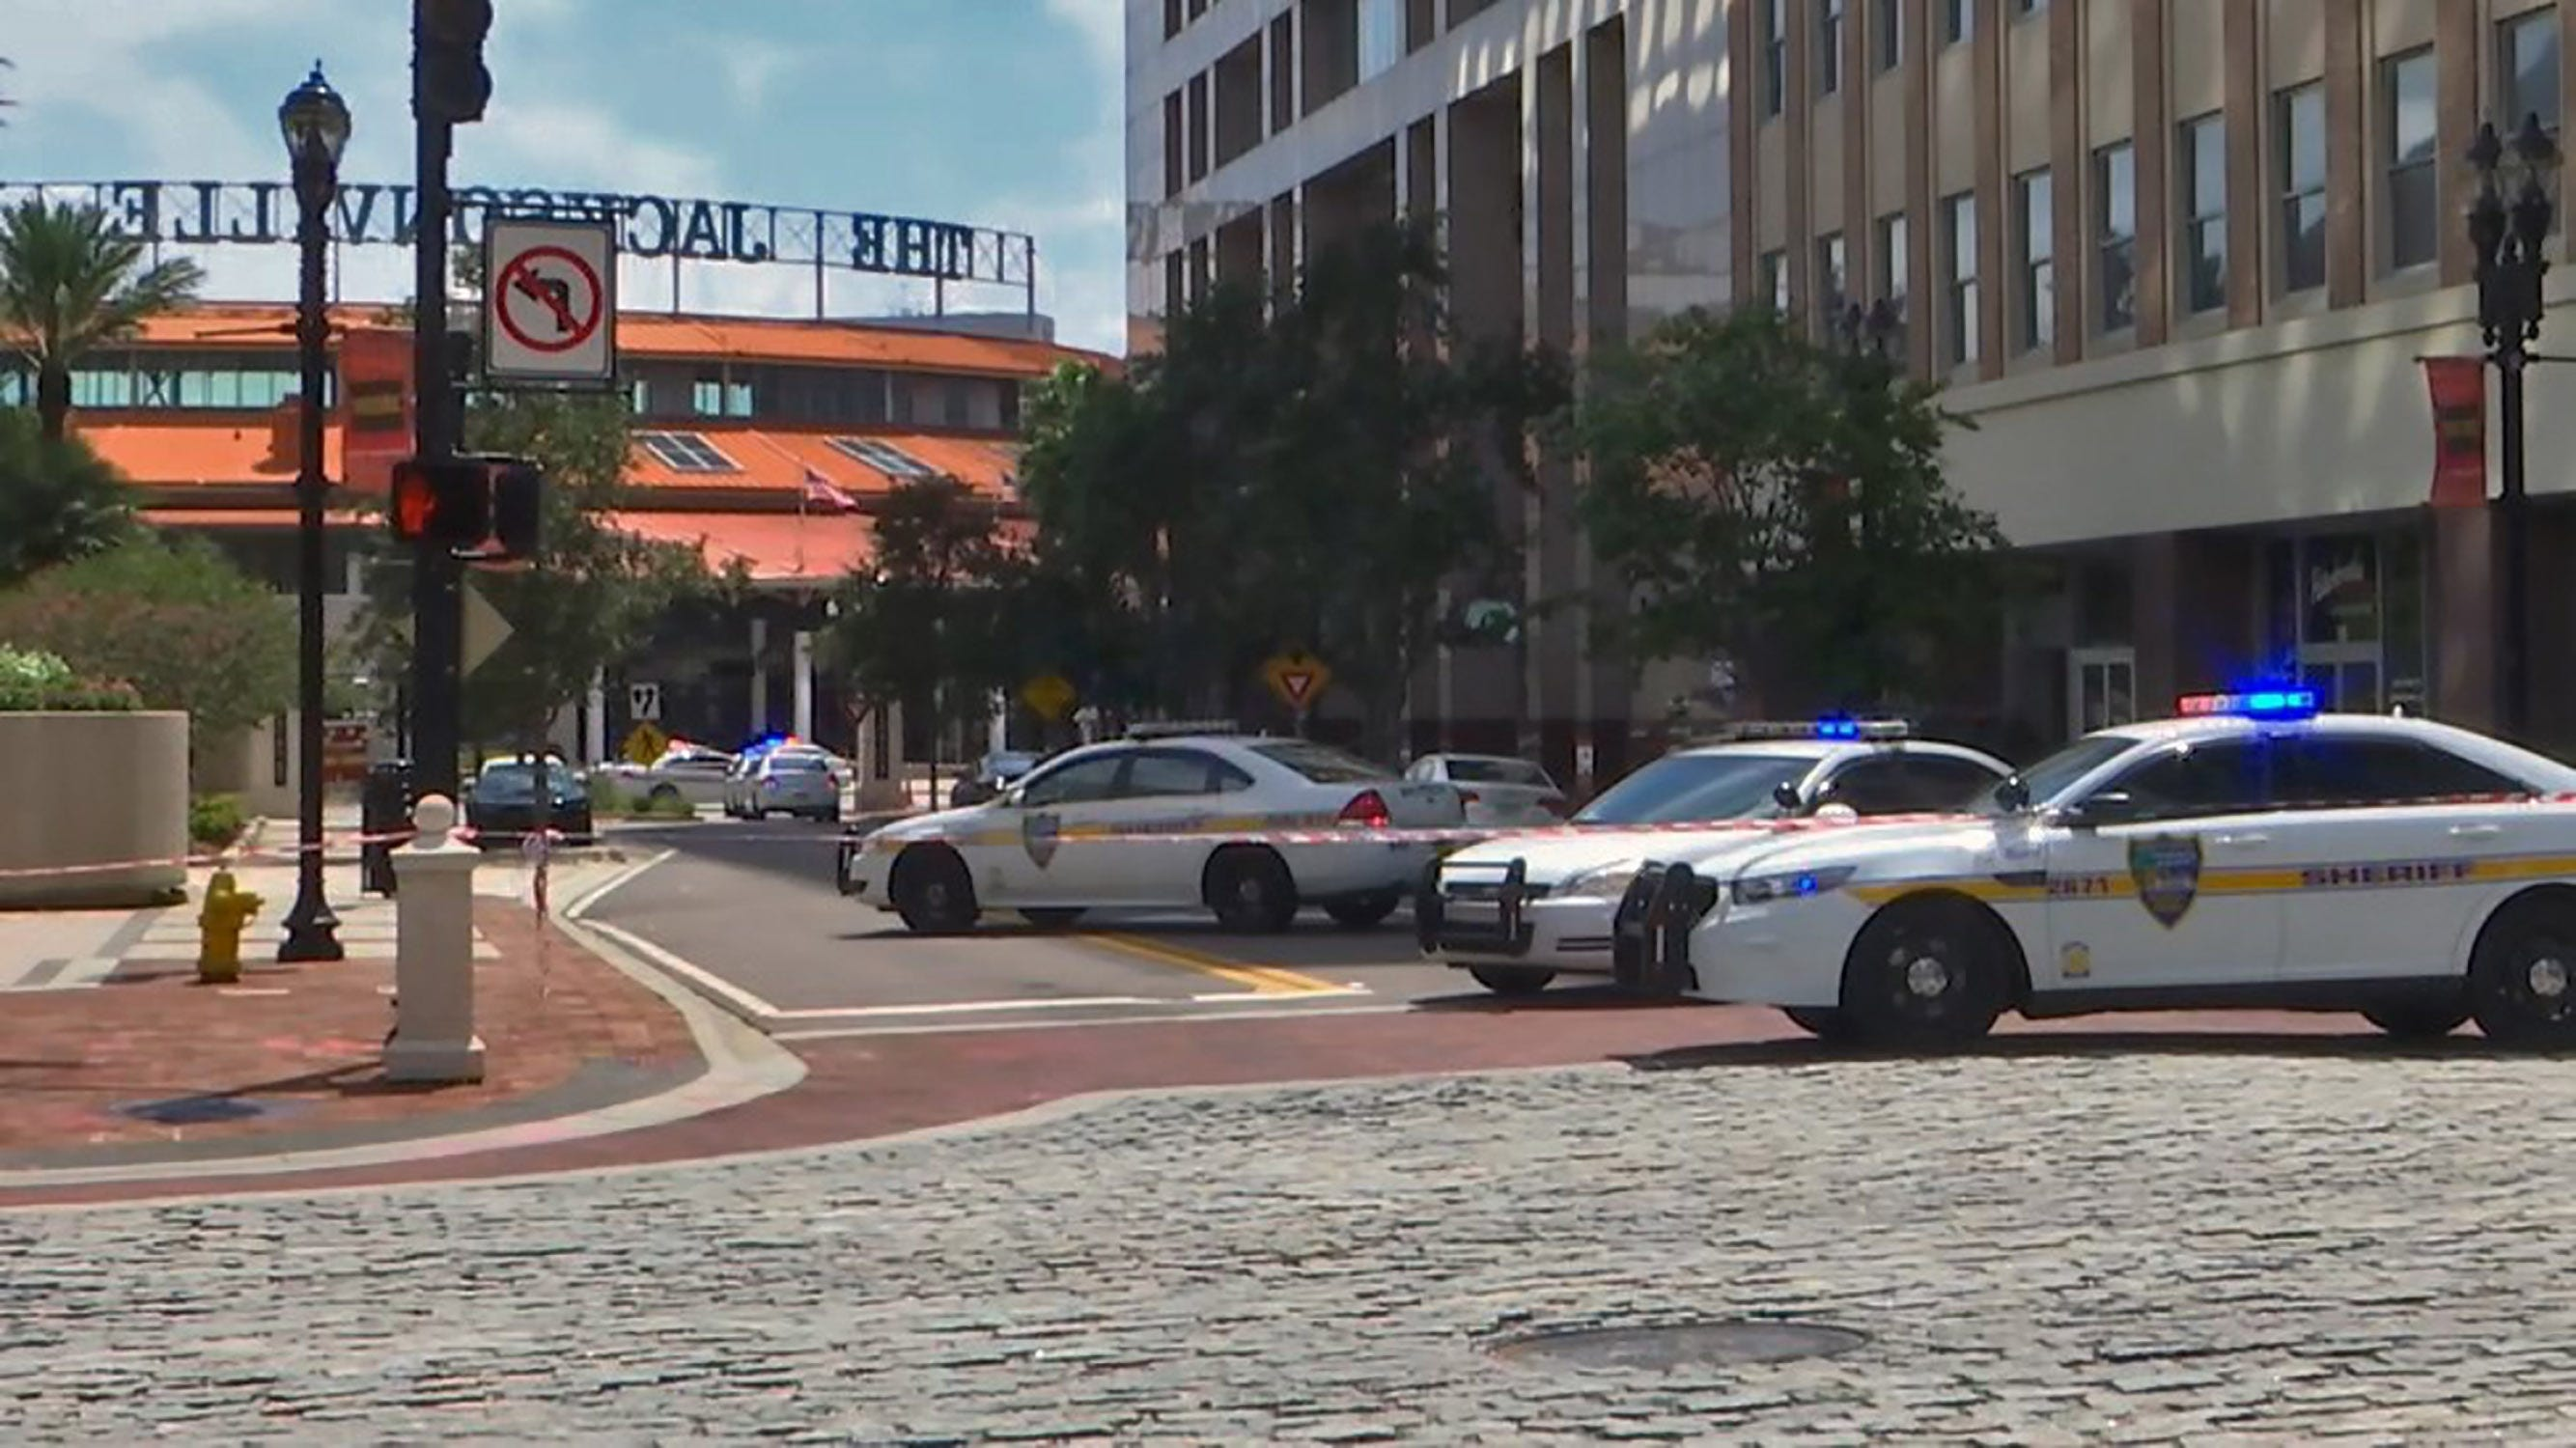 4 reported dead after shooting rampage at Madden tourney at Jacksonville Landing